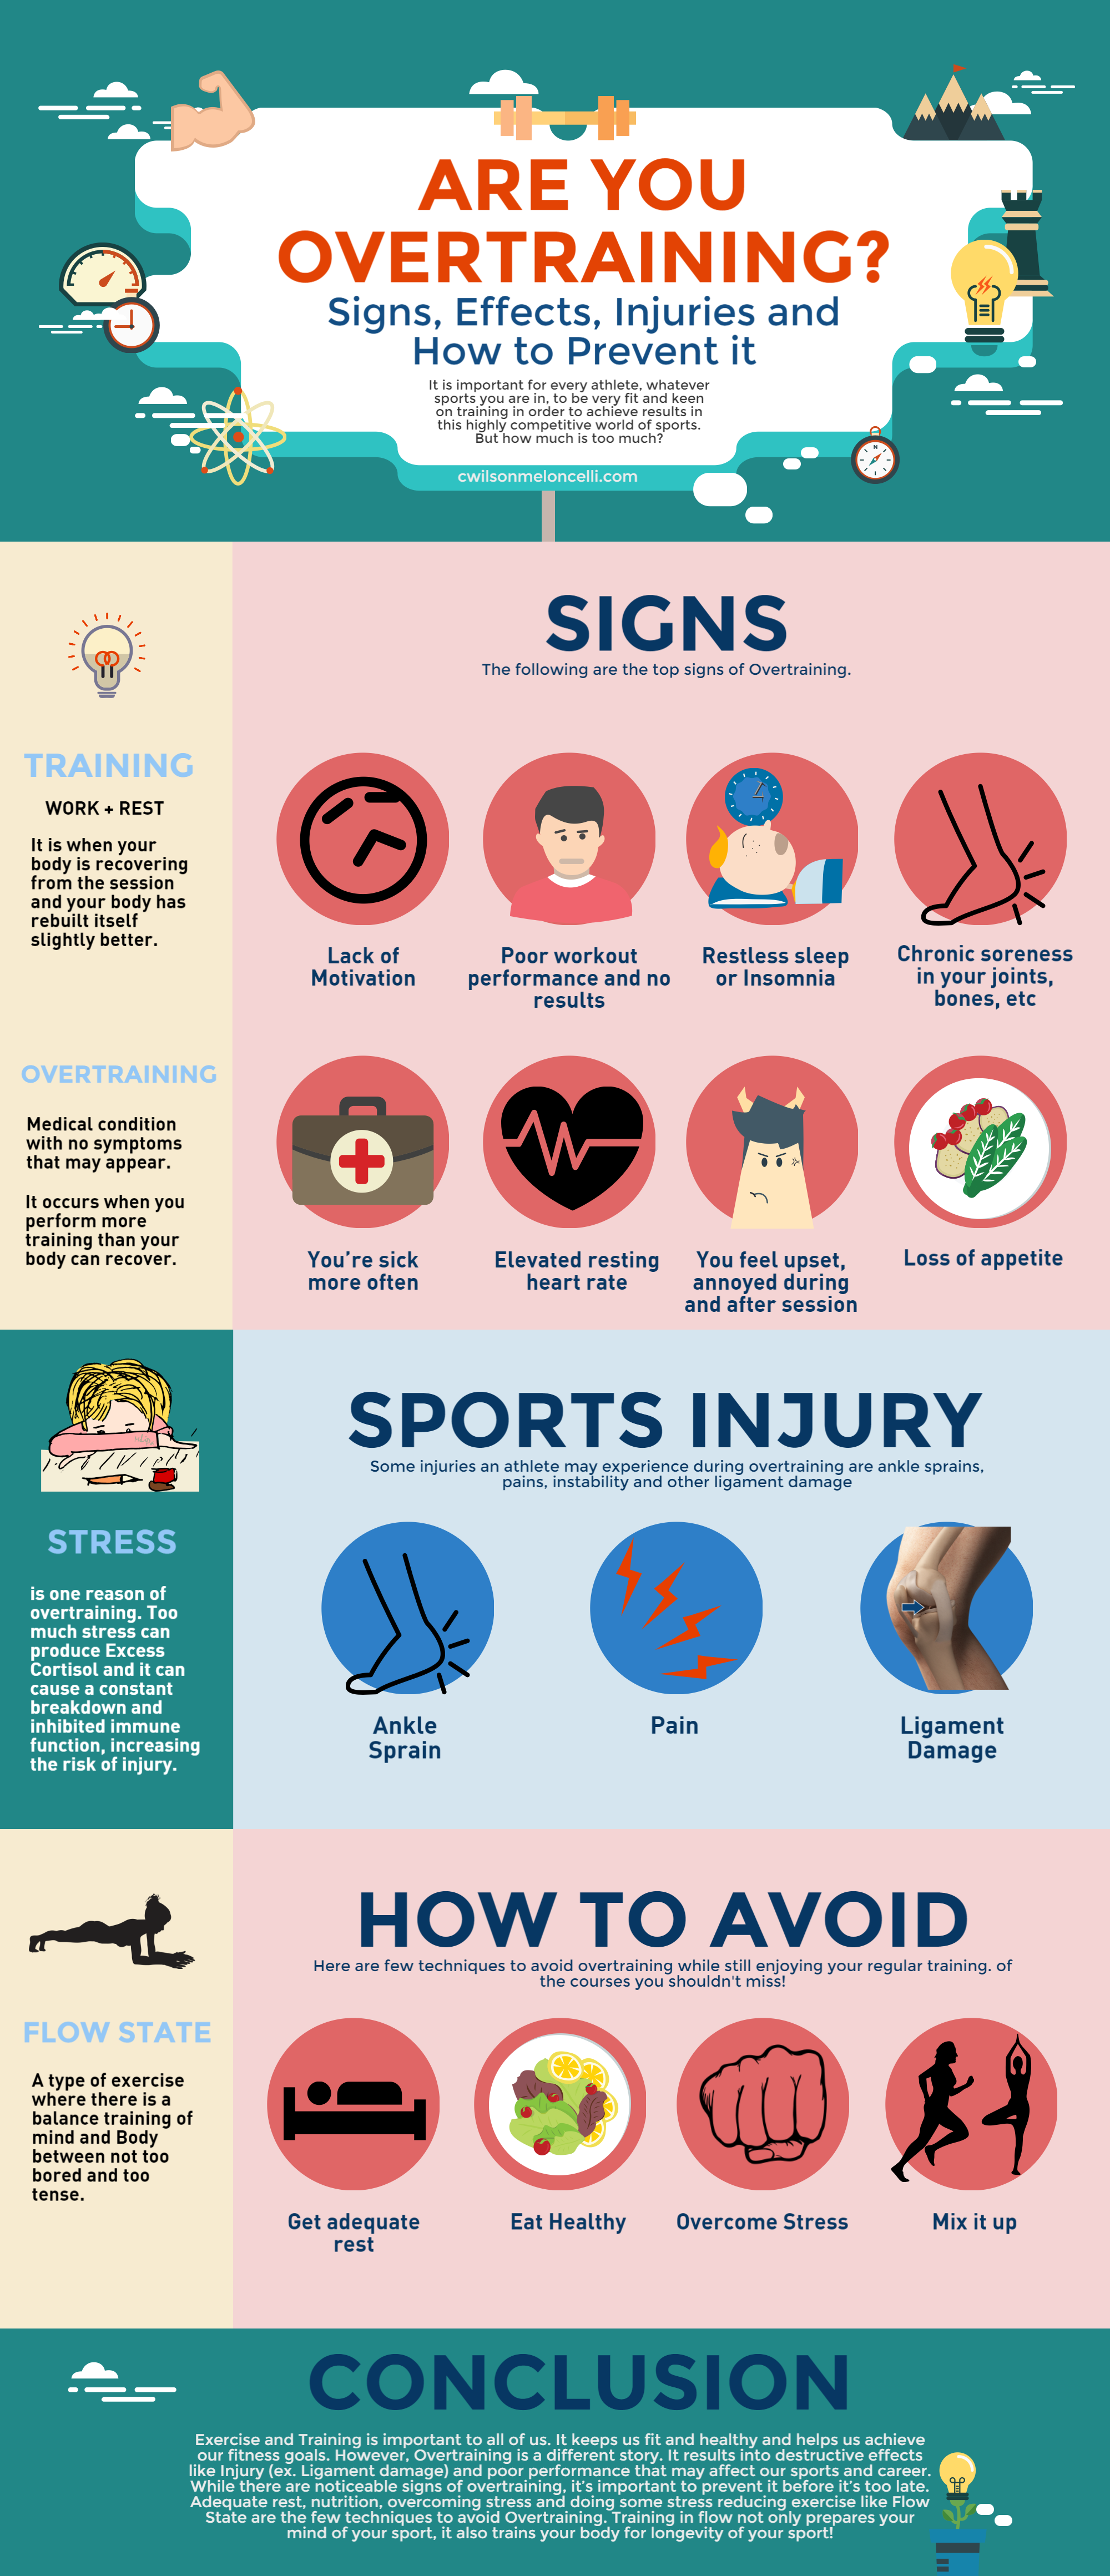 Are You Overtraining Signs Effects Injuries And How To Prevent It Infographic Health Injury Health And Wellbeing